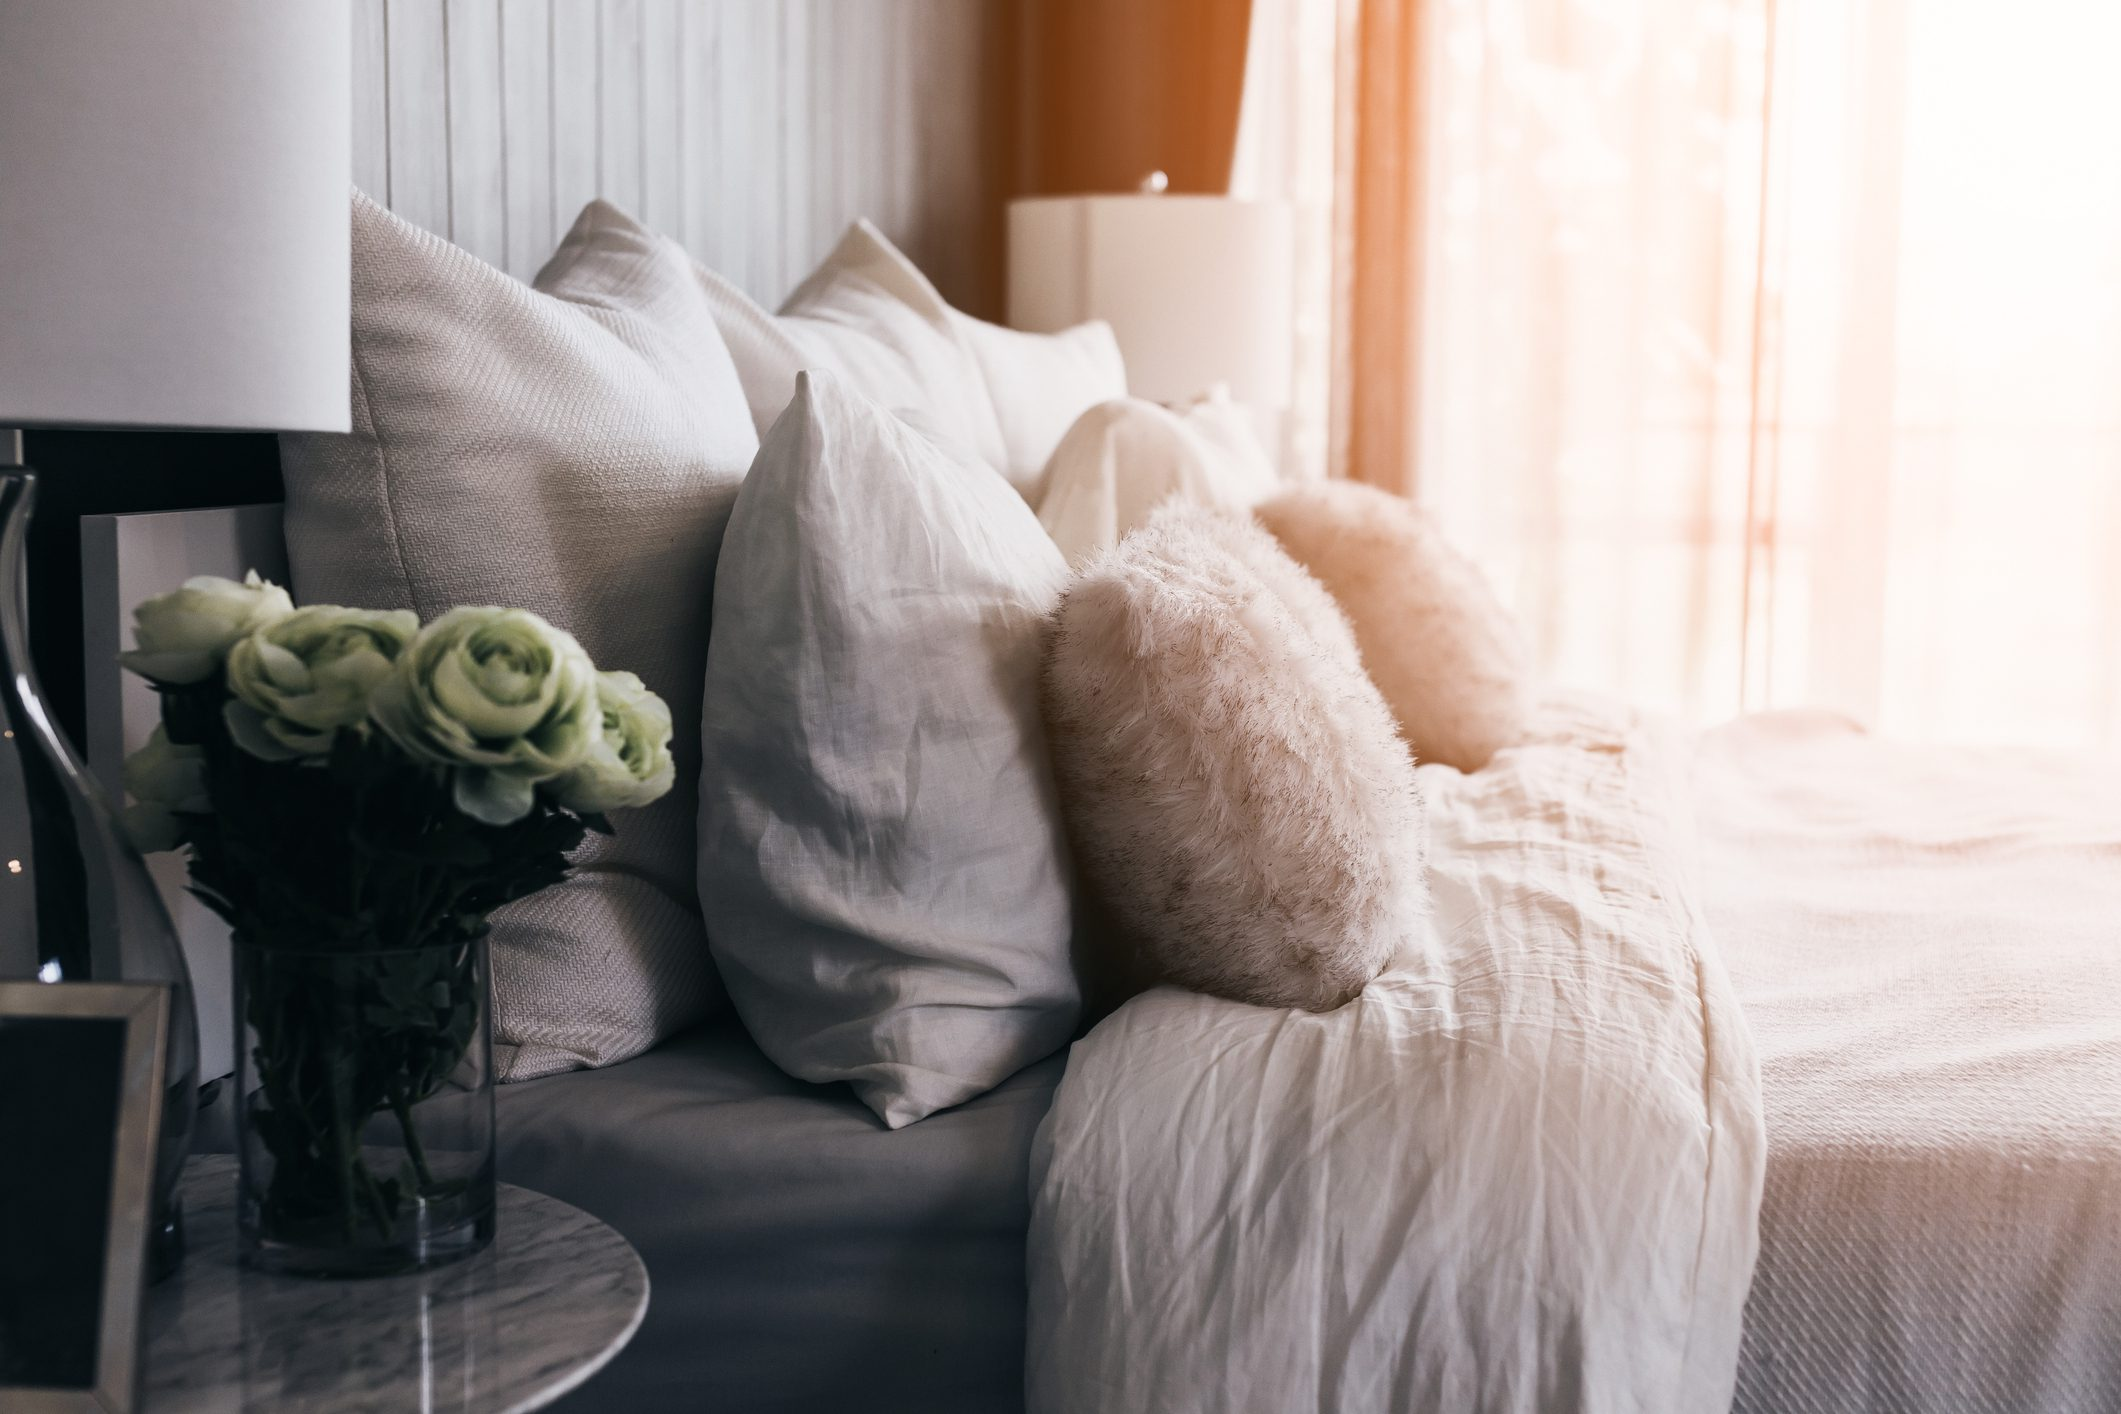 light soft pillow on beautiful bed cozy bedroom with sun light from window interior concept